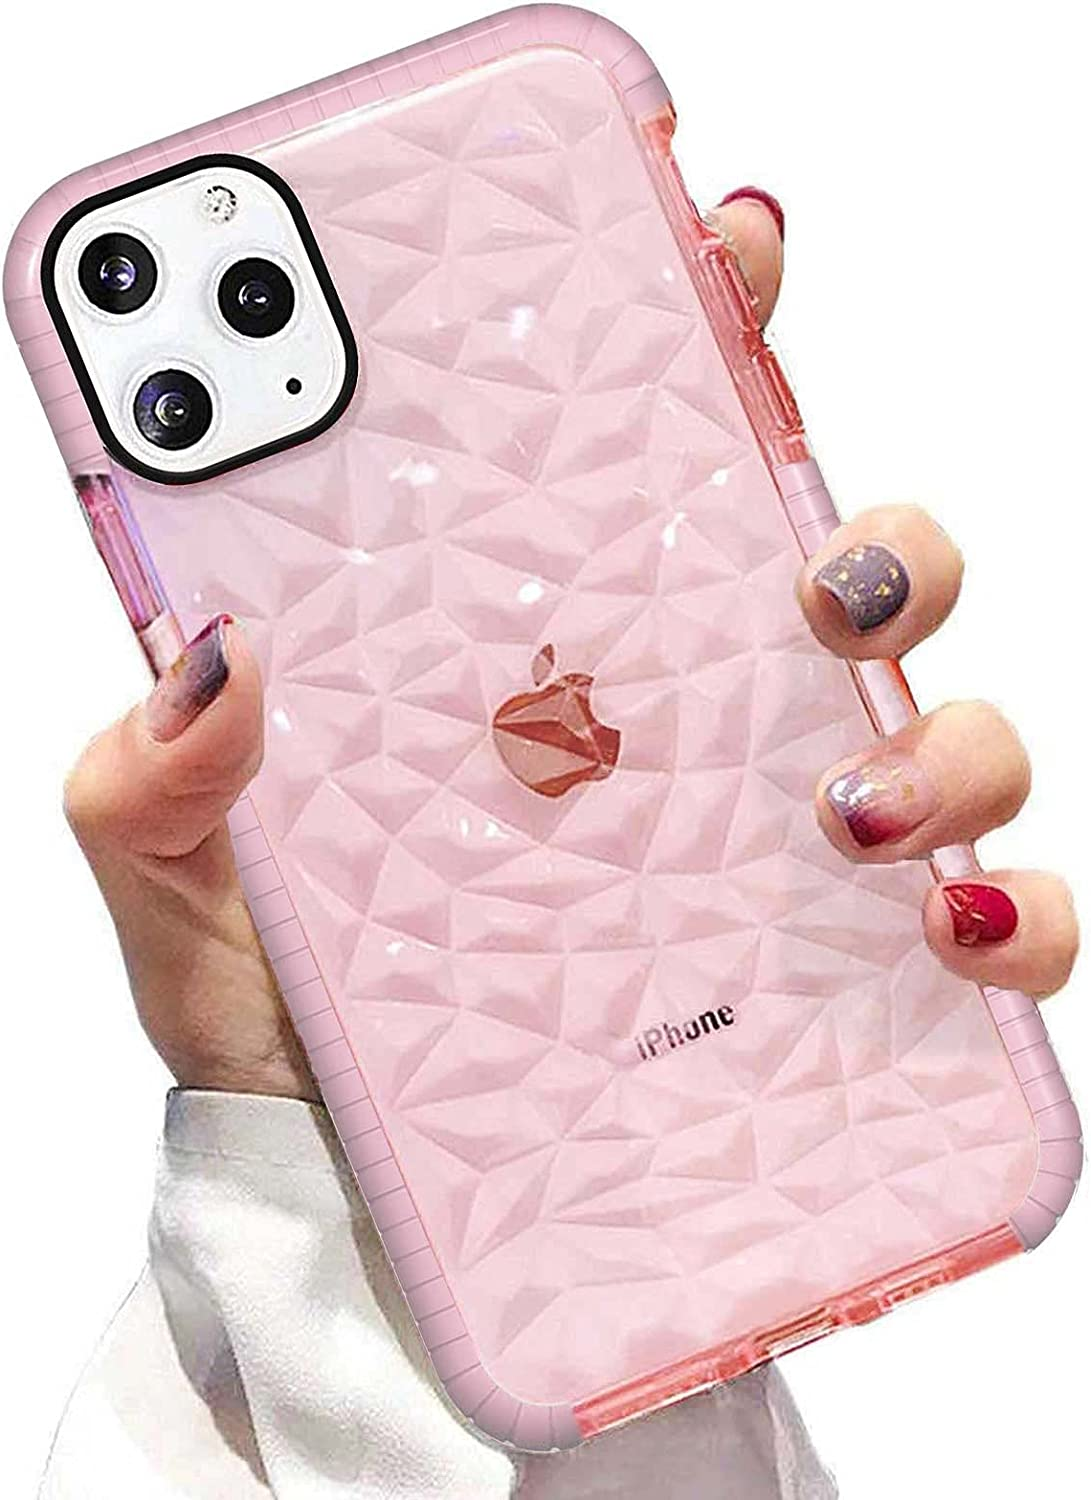 Superyong for iPhone 11 Pro MAX Case,Crystal Clear Slim 3D Diamond Glitter Pattern Cute Soft TPU Anti-Scratch Shockproof Protective Cover for Women Girls Men Boys with iPhone 11 Pro MAX 6.5 Inch-Pink